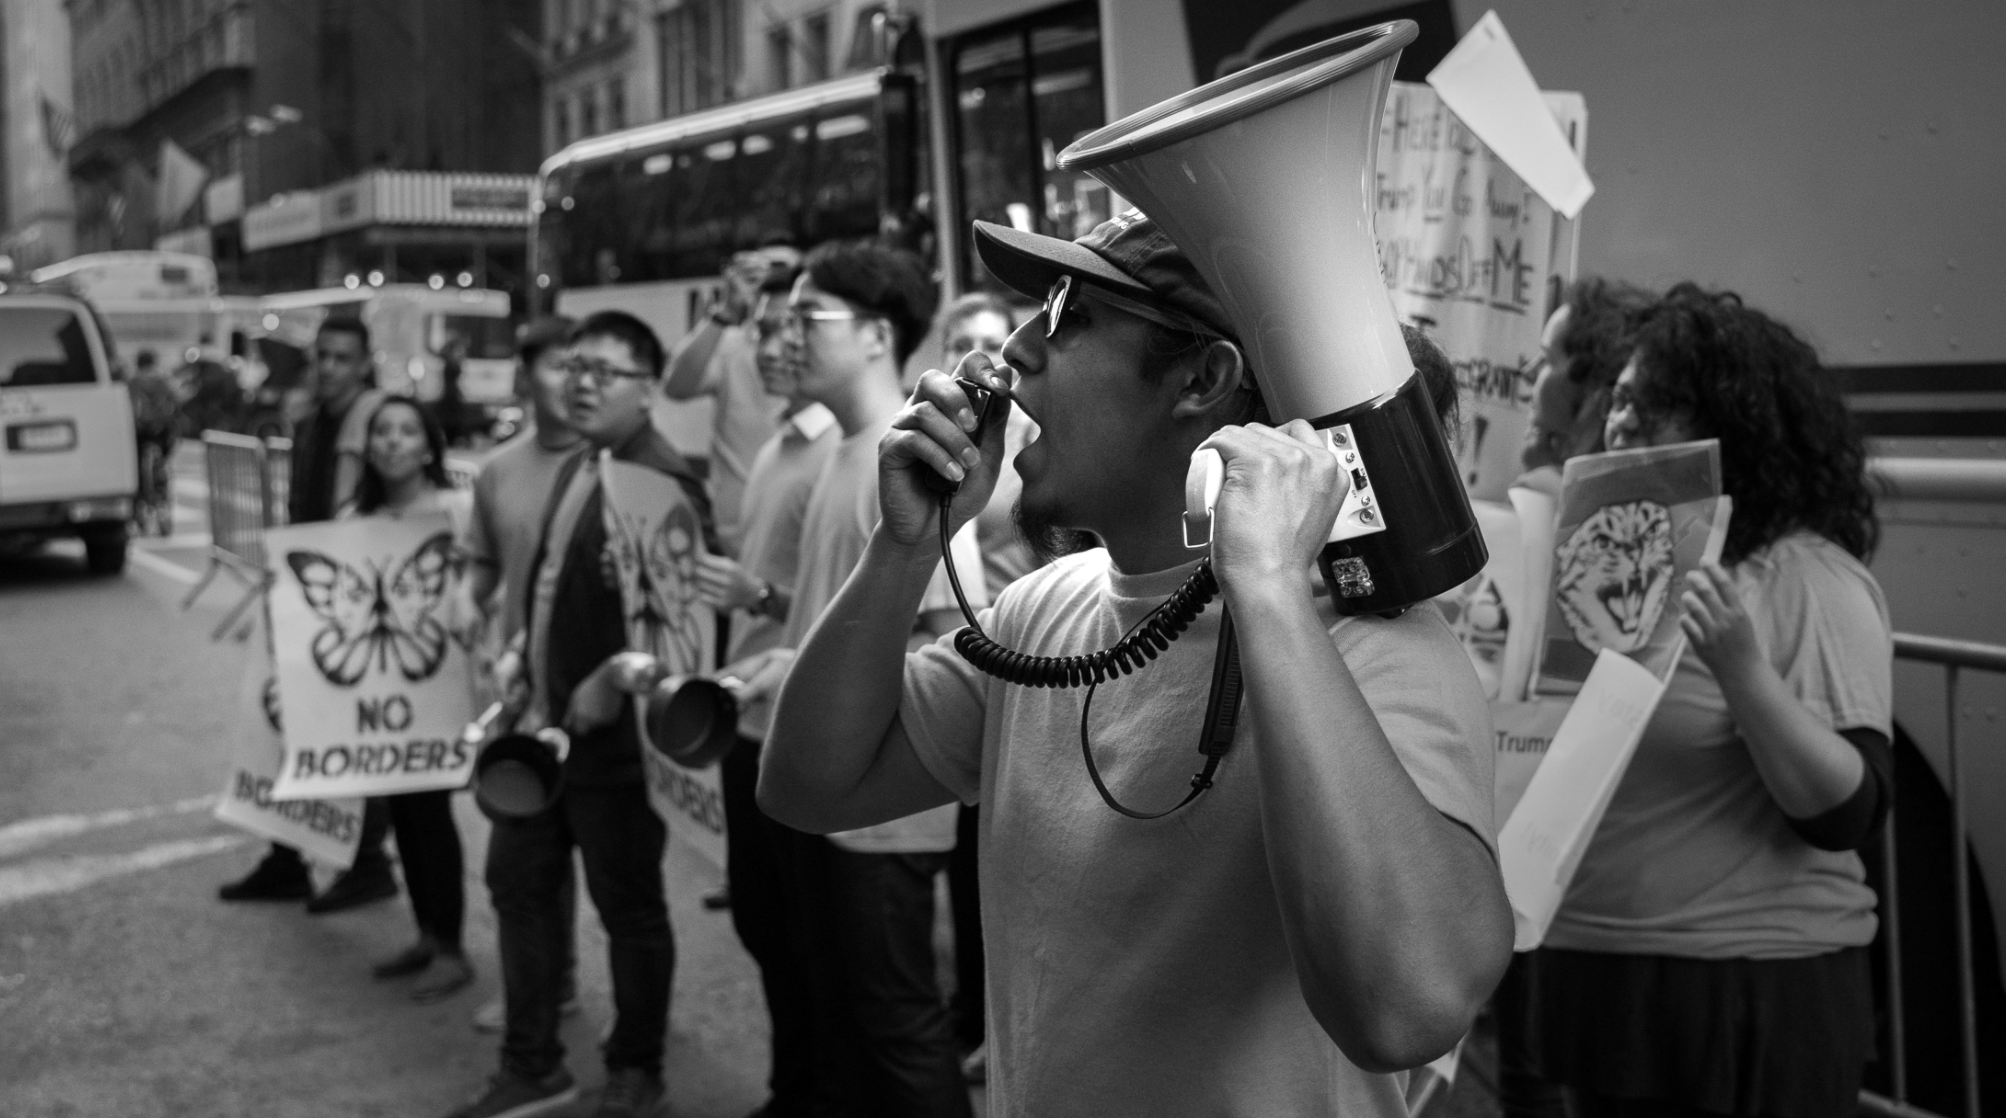 Eric with his megaphone conducting an rally.